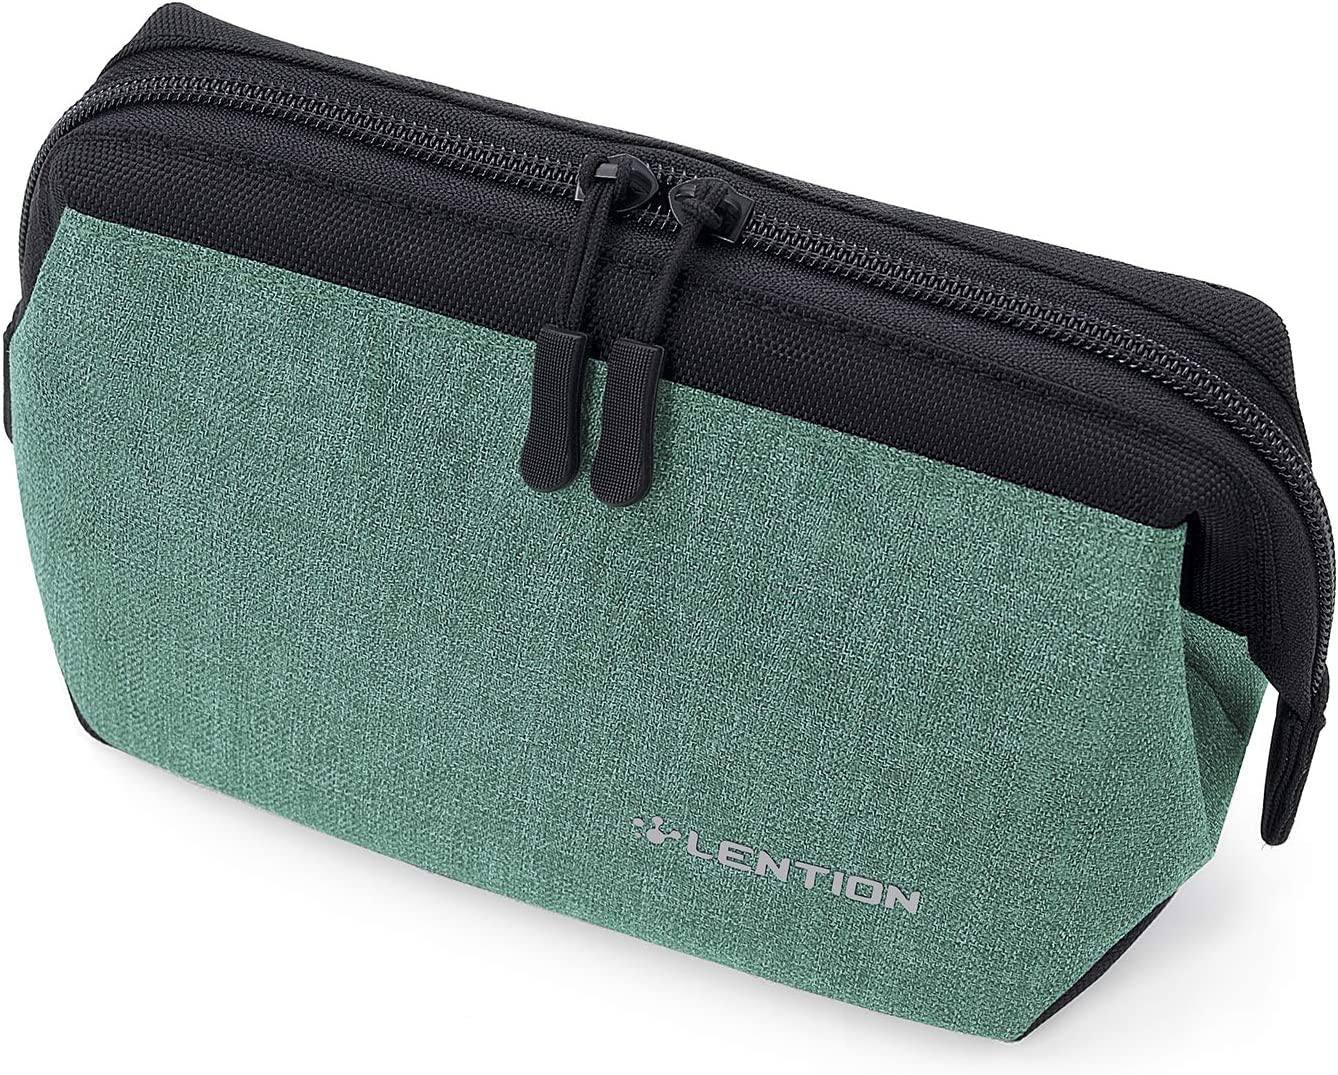 LENTION Compact Carrying Accessories Pouch, Universal Electronic Gadget Sleeve Case for Laptop/Tablet Power Adapter, MacBook Air/Pro Charger, Wireless Mouse, Phone, Pencil and More (Green)